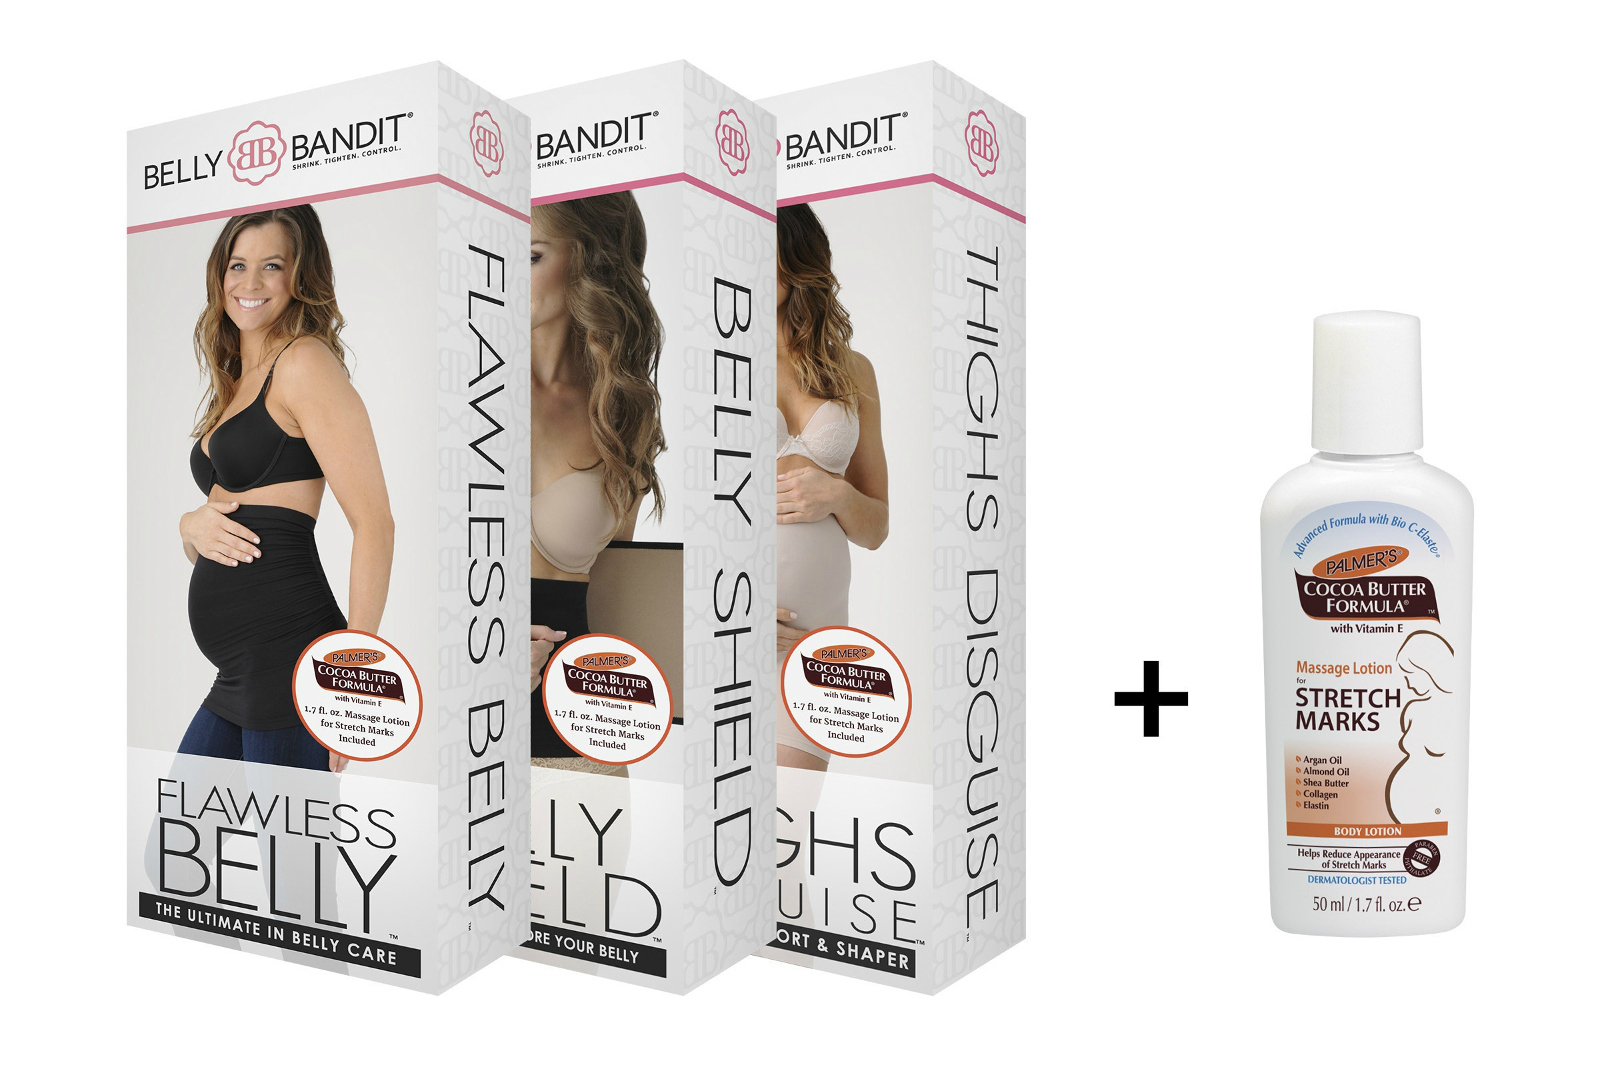 Palmer's Cocoa Butter and Belly Bandit Partner To Reduce Stretch Marks